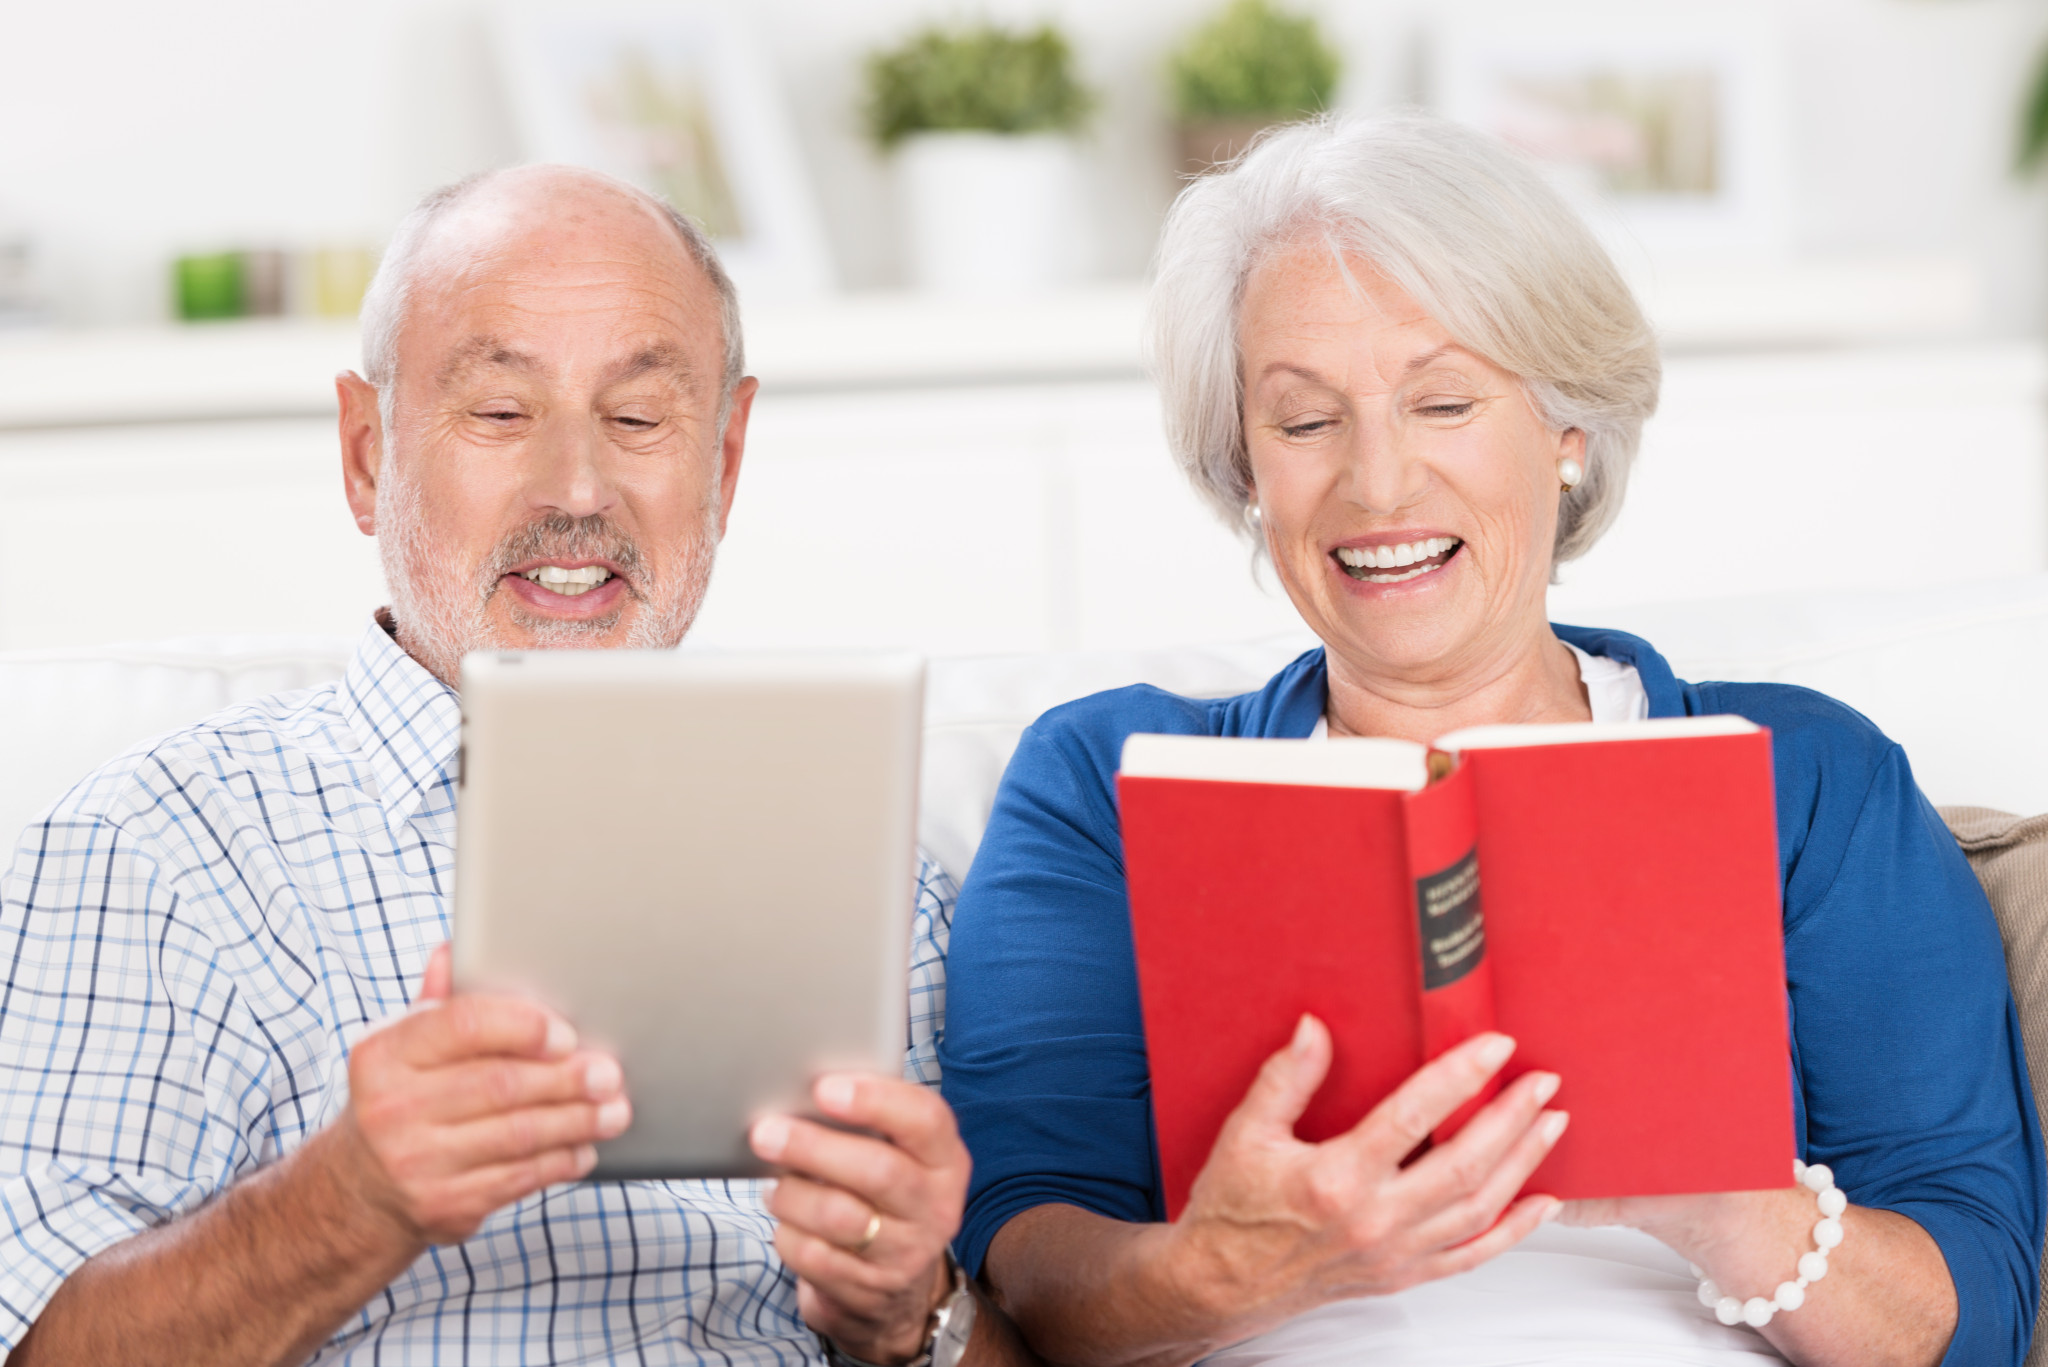 Geriatric Technophobia: Four Reasons Why Seniors Shouldn't Be Afraid